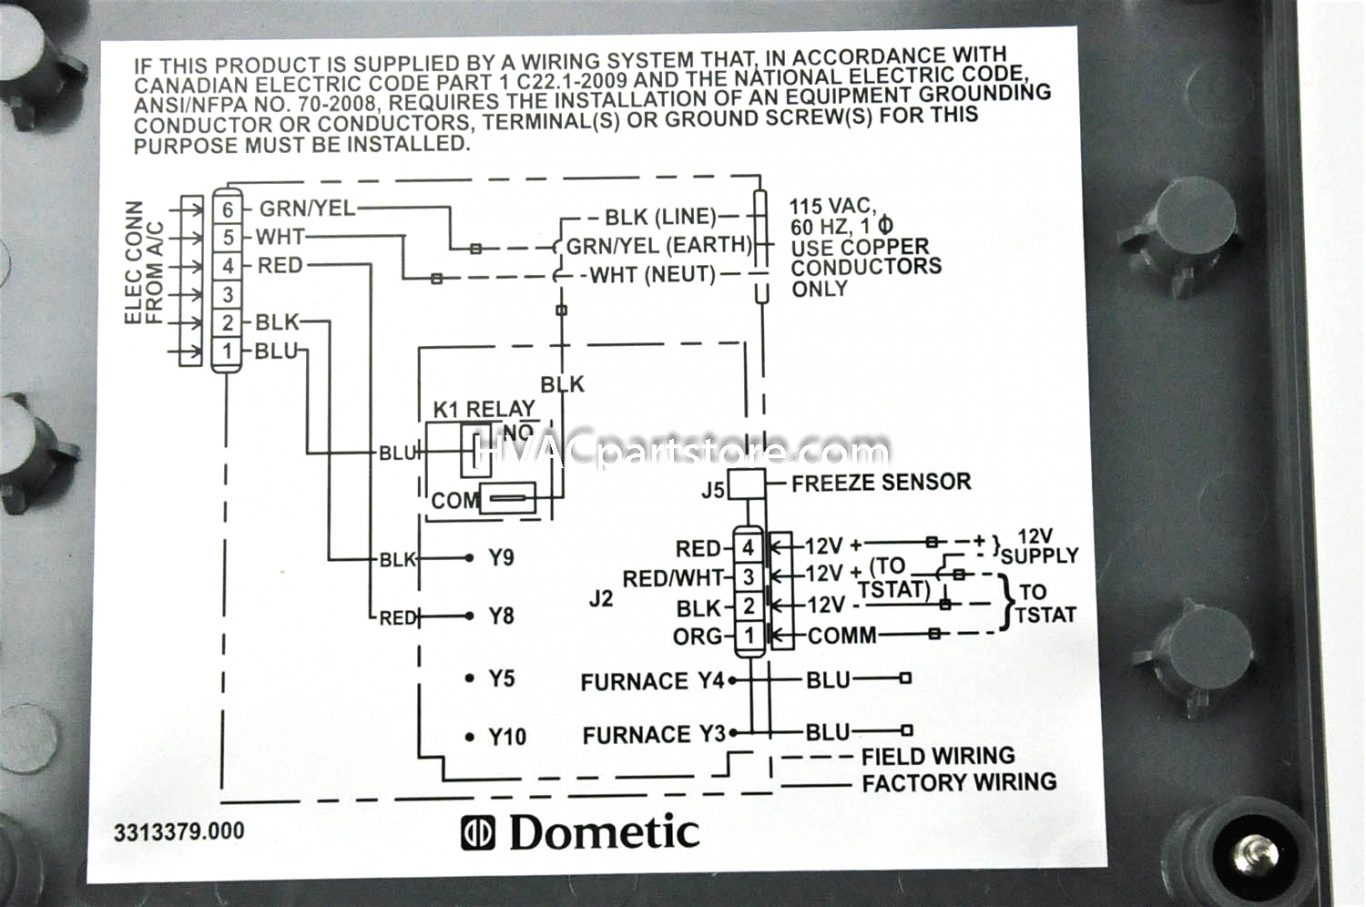 coleman mach thermostat wiring diagram    coleman mach thermostat wiring diagram    gallery     coleman mach thermostat wiring diagram    gallery